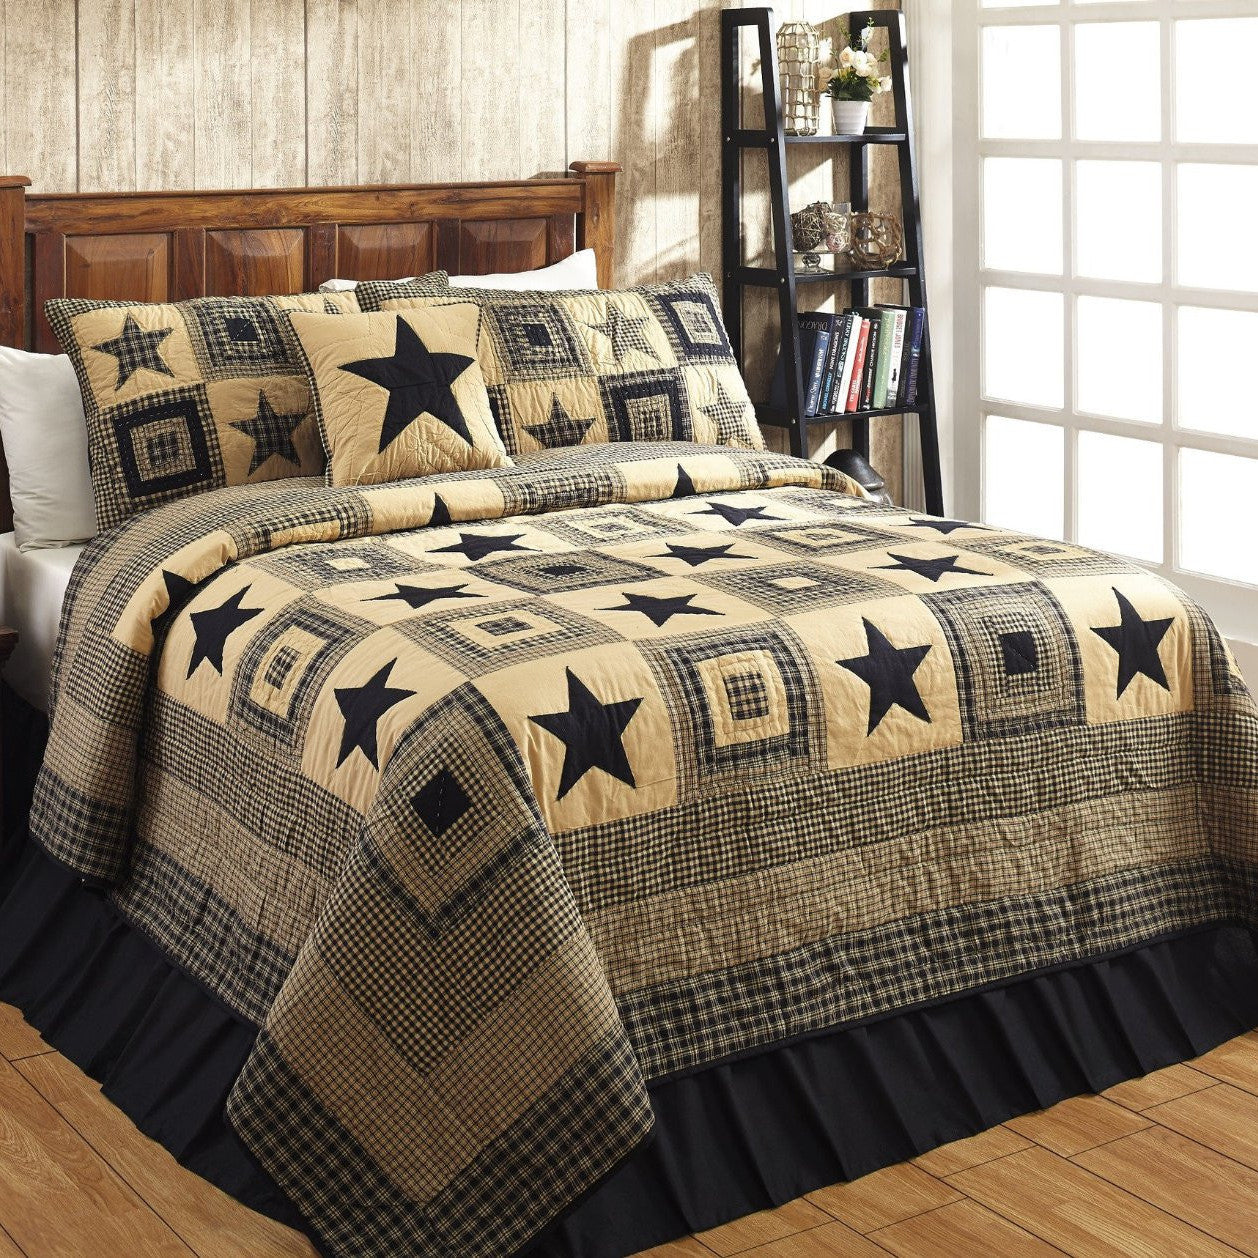 Colonial Star Black Tan Quilted Bedding Set 3 Pc Luxury King Dl Country Barn